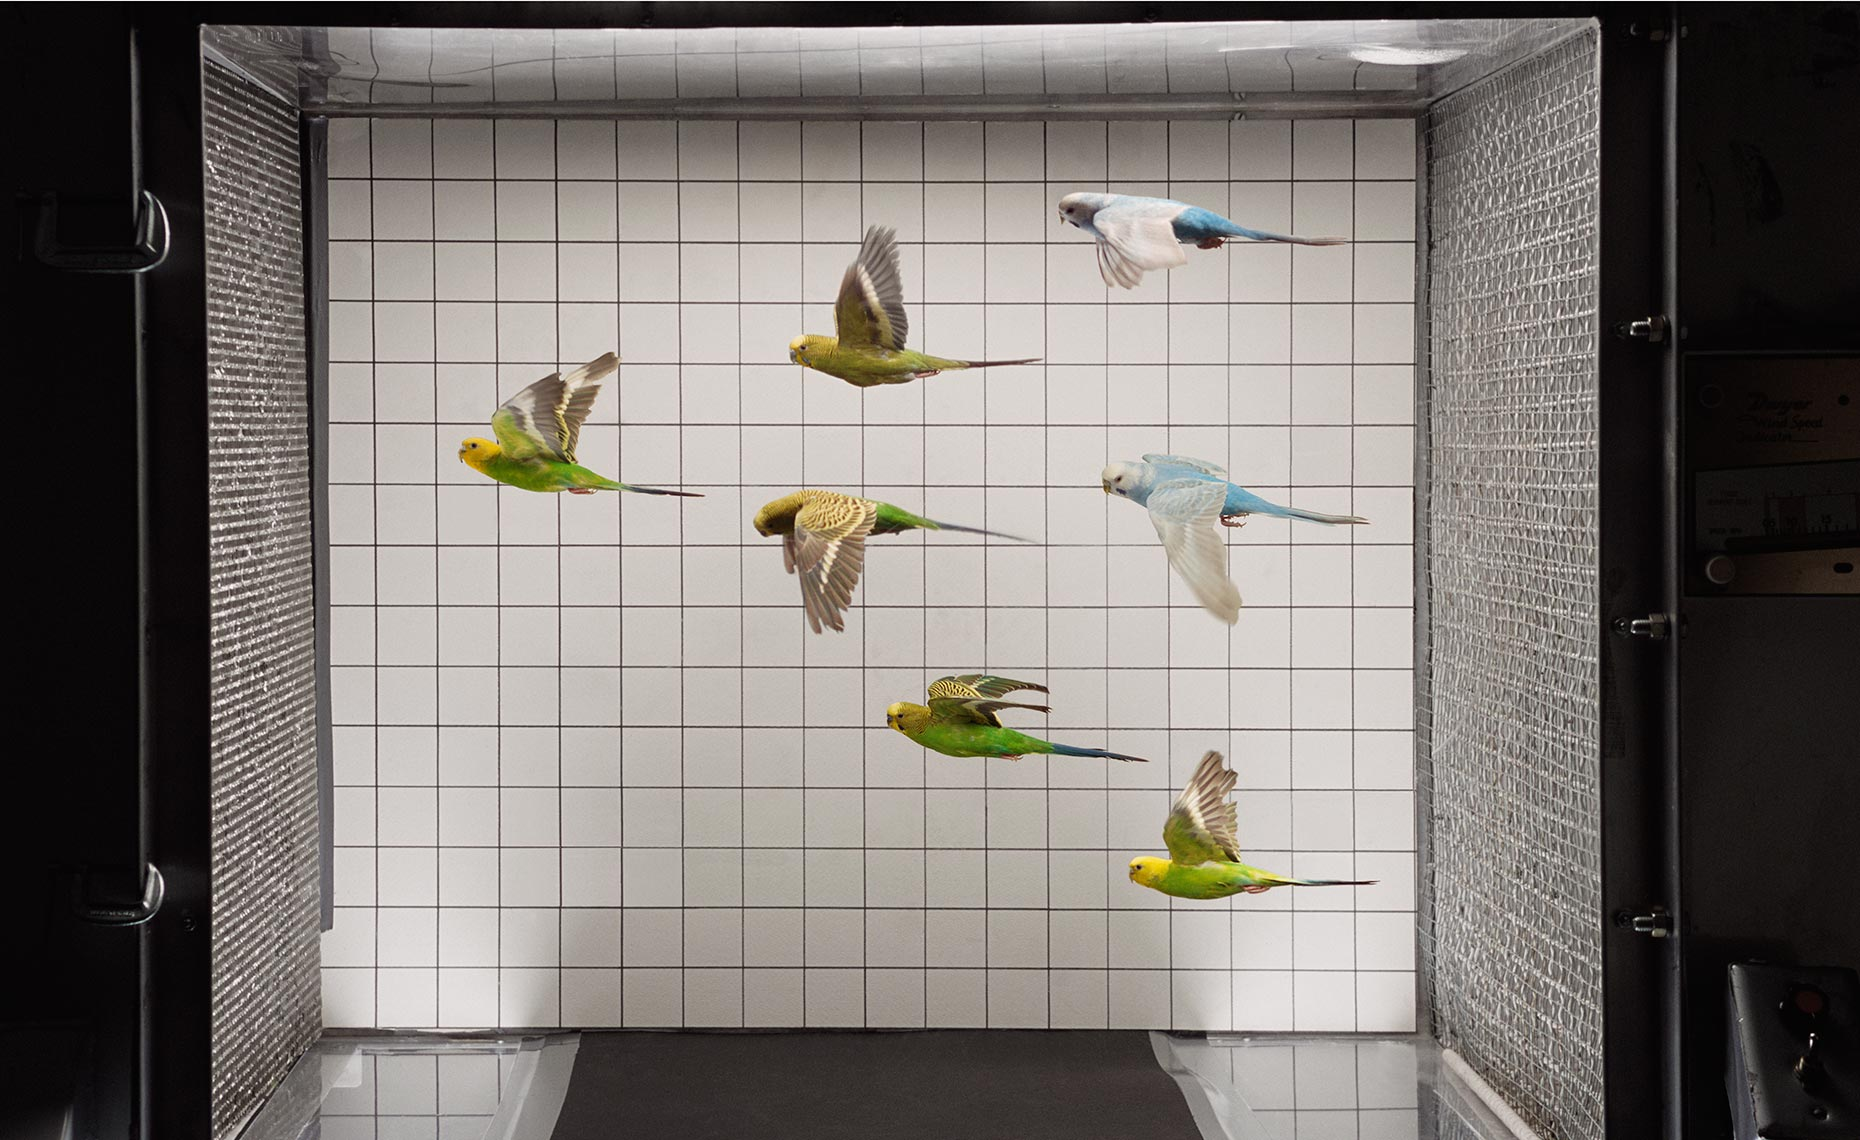 wind_tunnel_birds